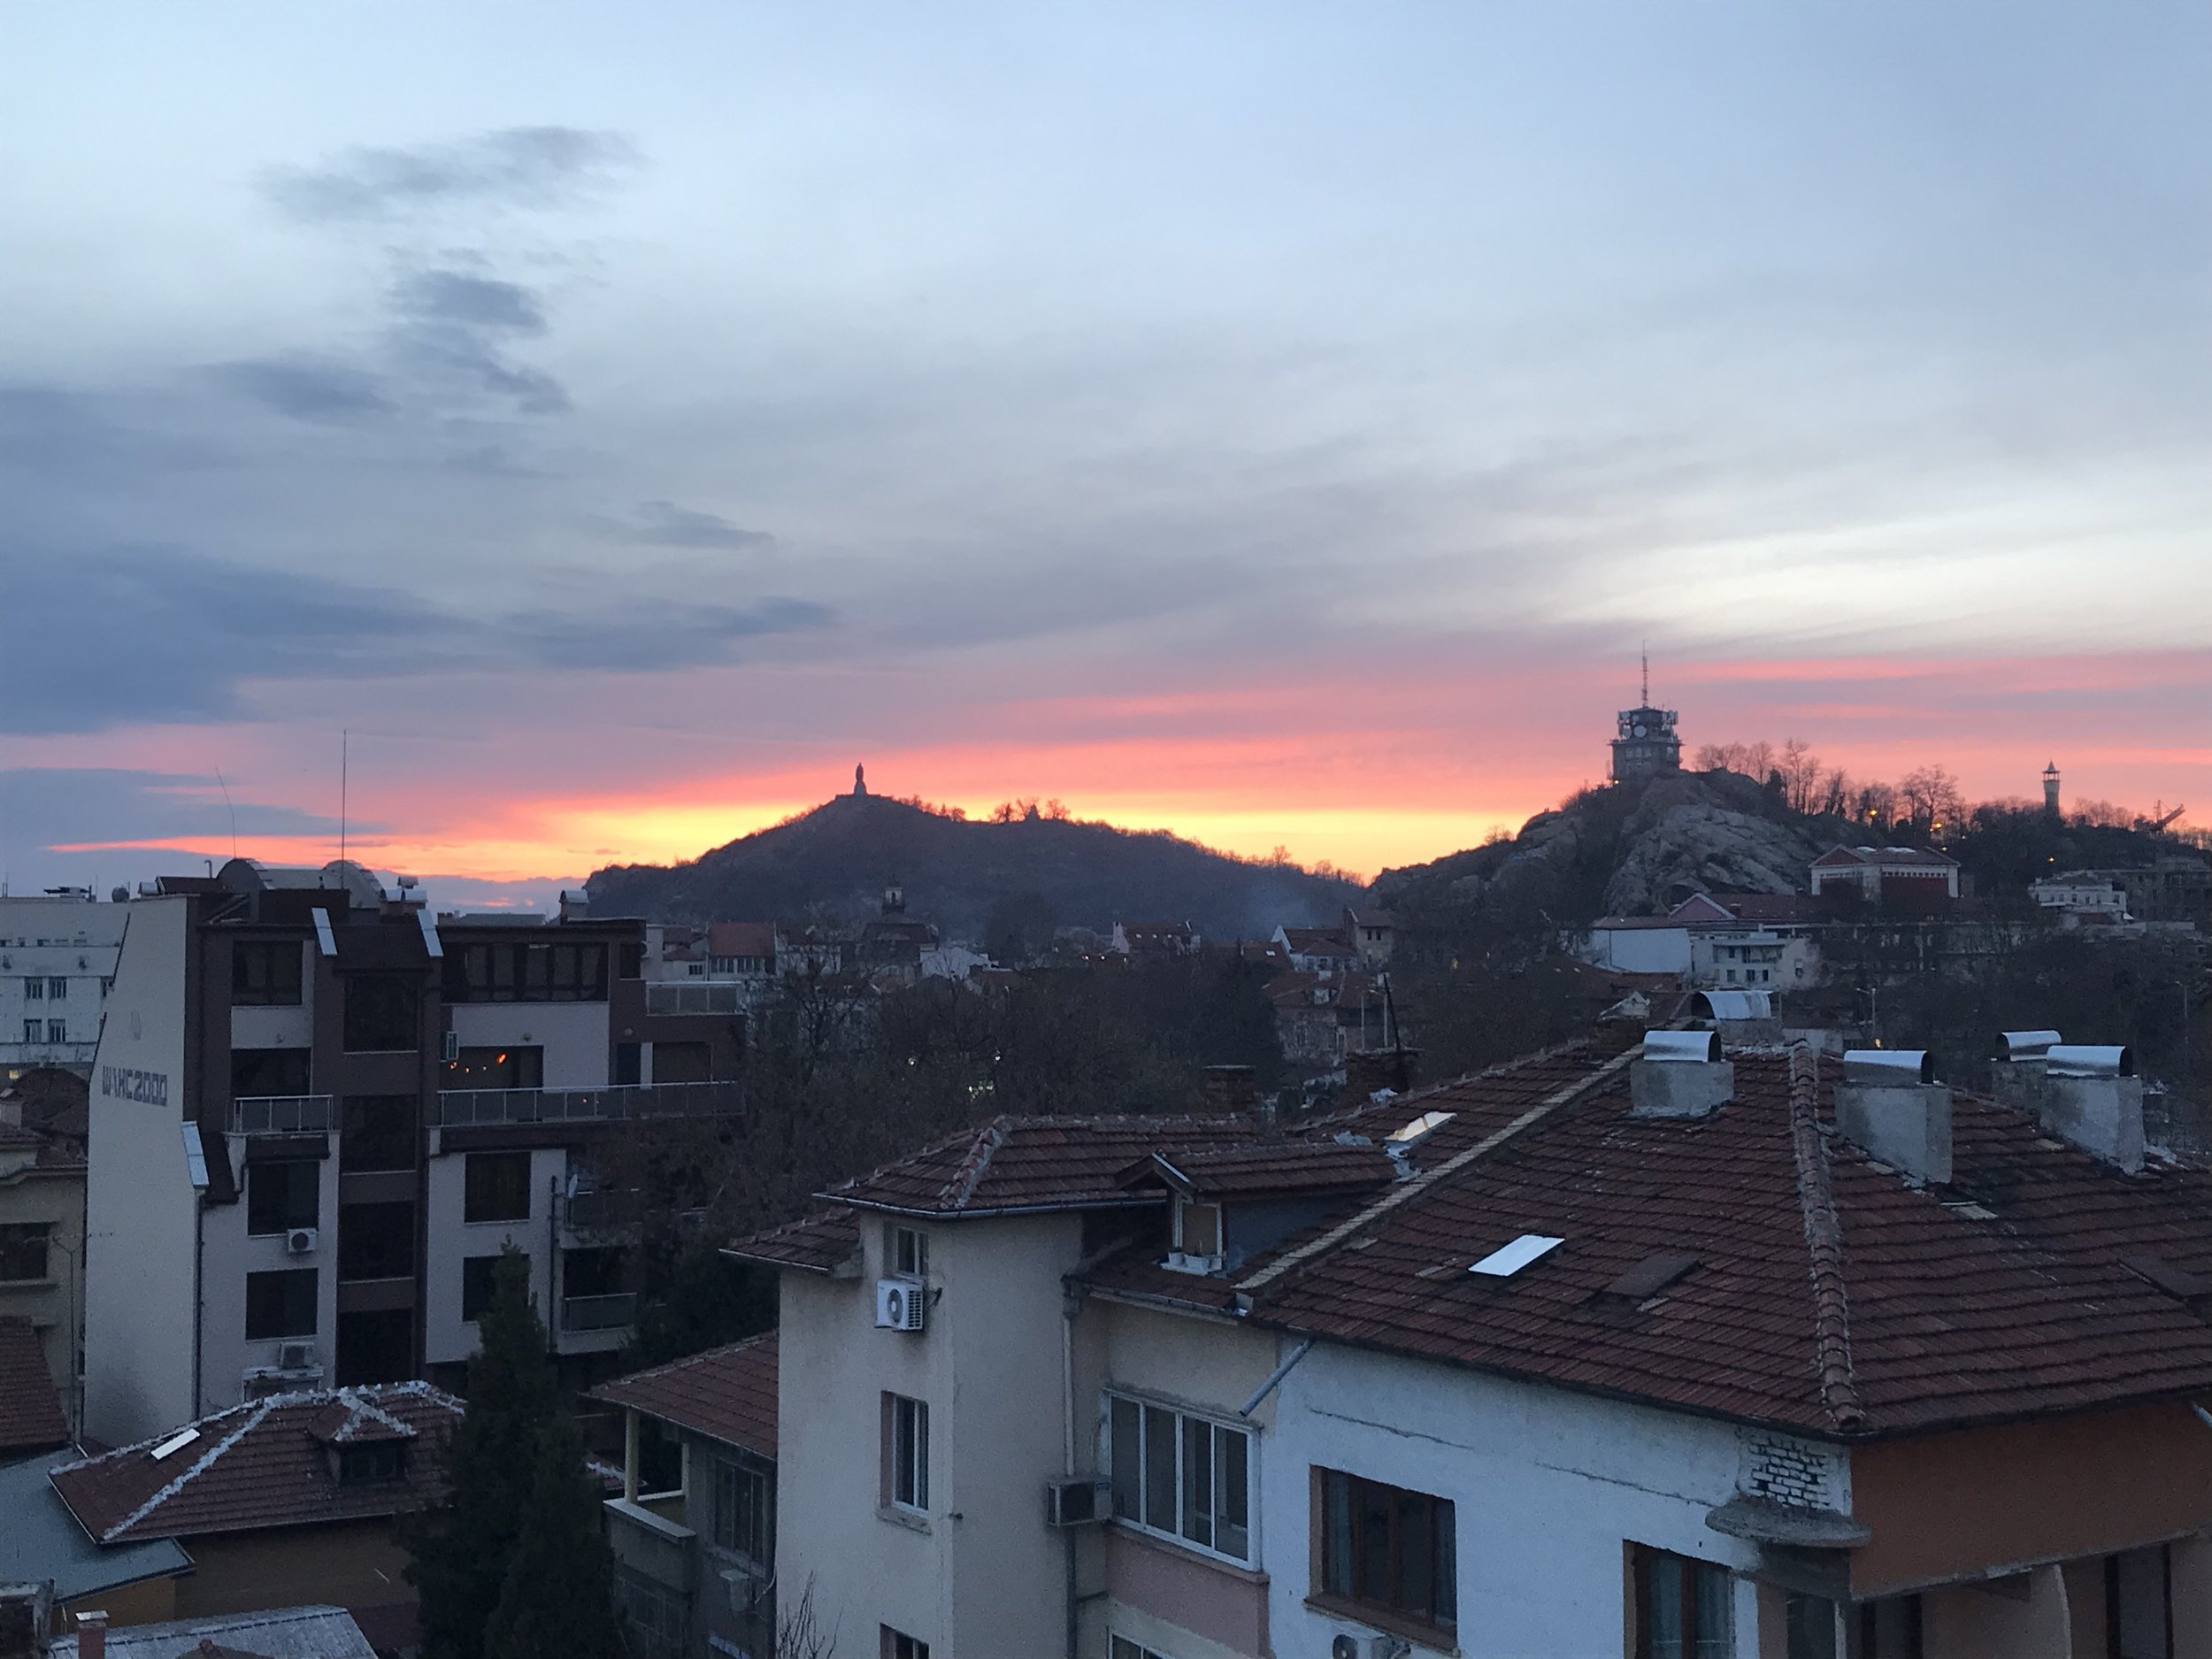 The sunsetting behind some of plovdiv's hills